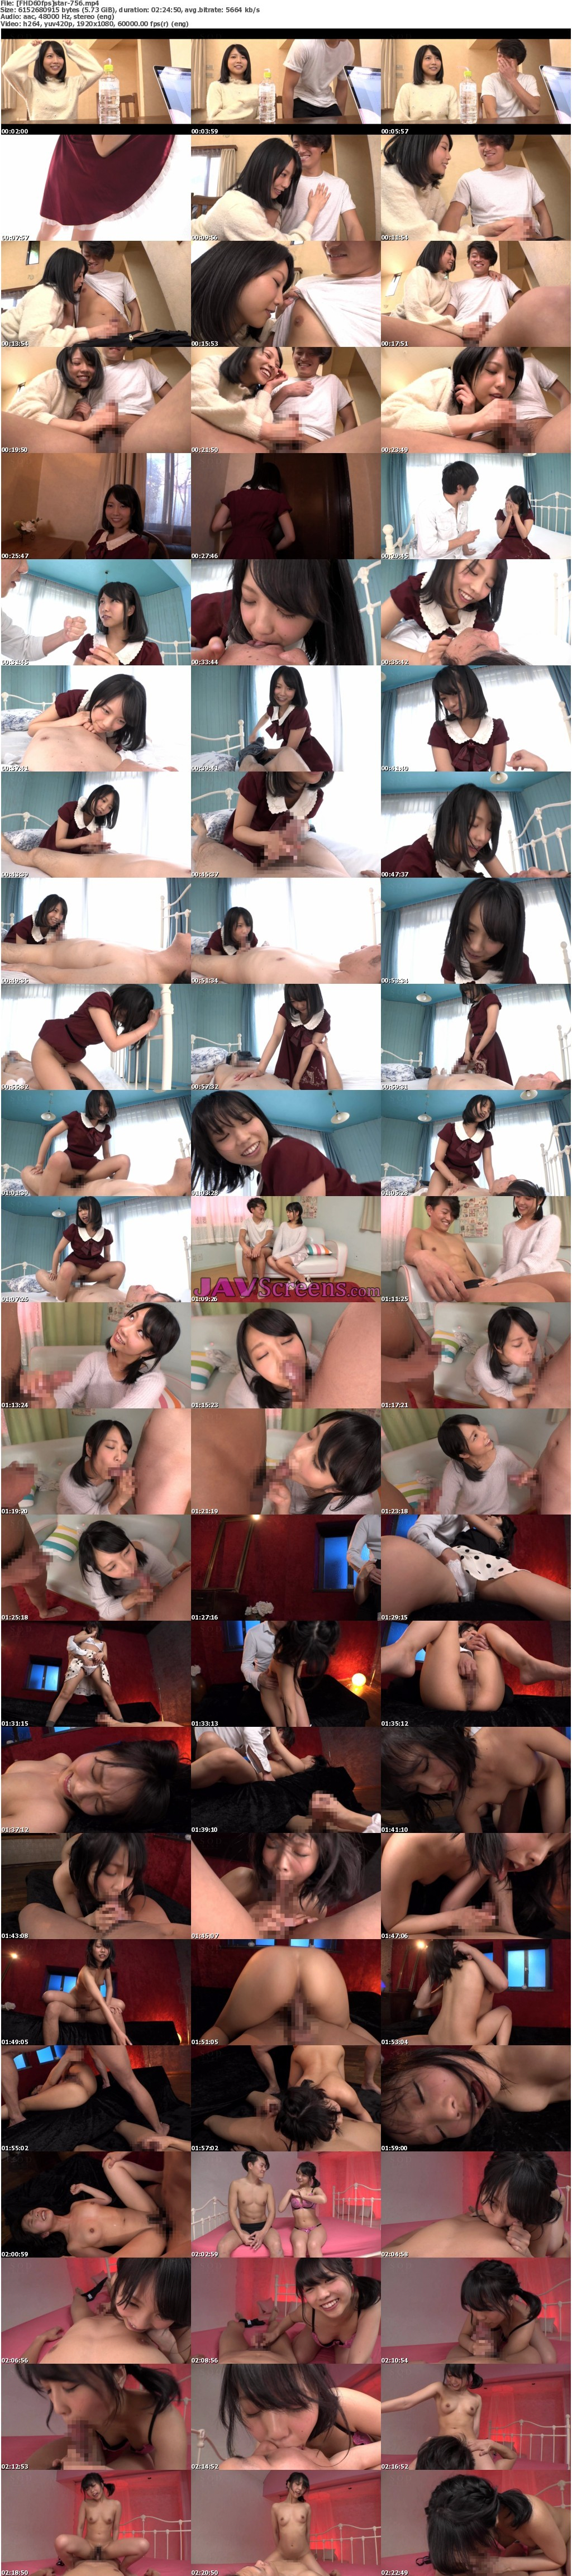 STAR-756.jpg - JAV Screenshot